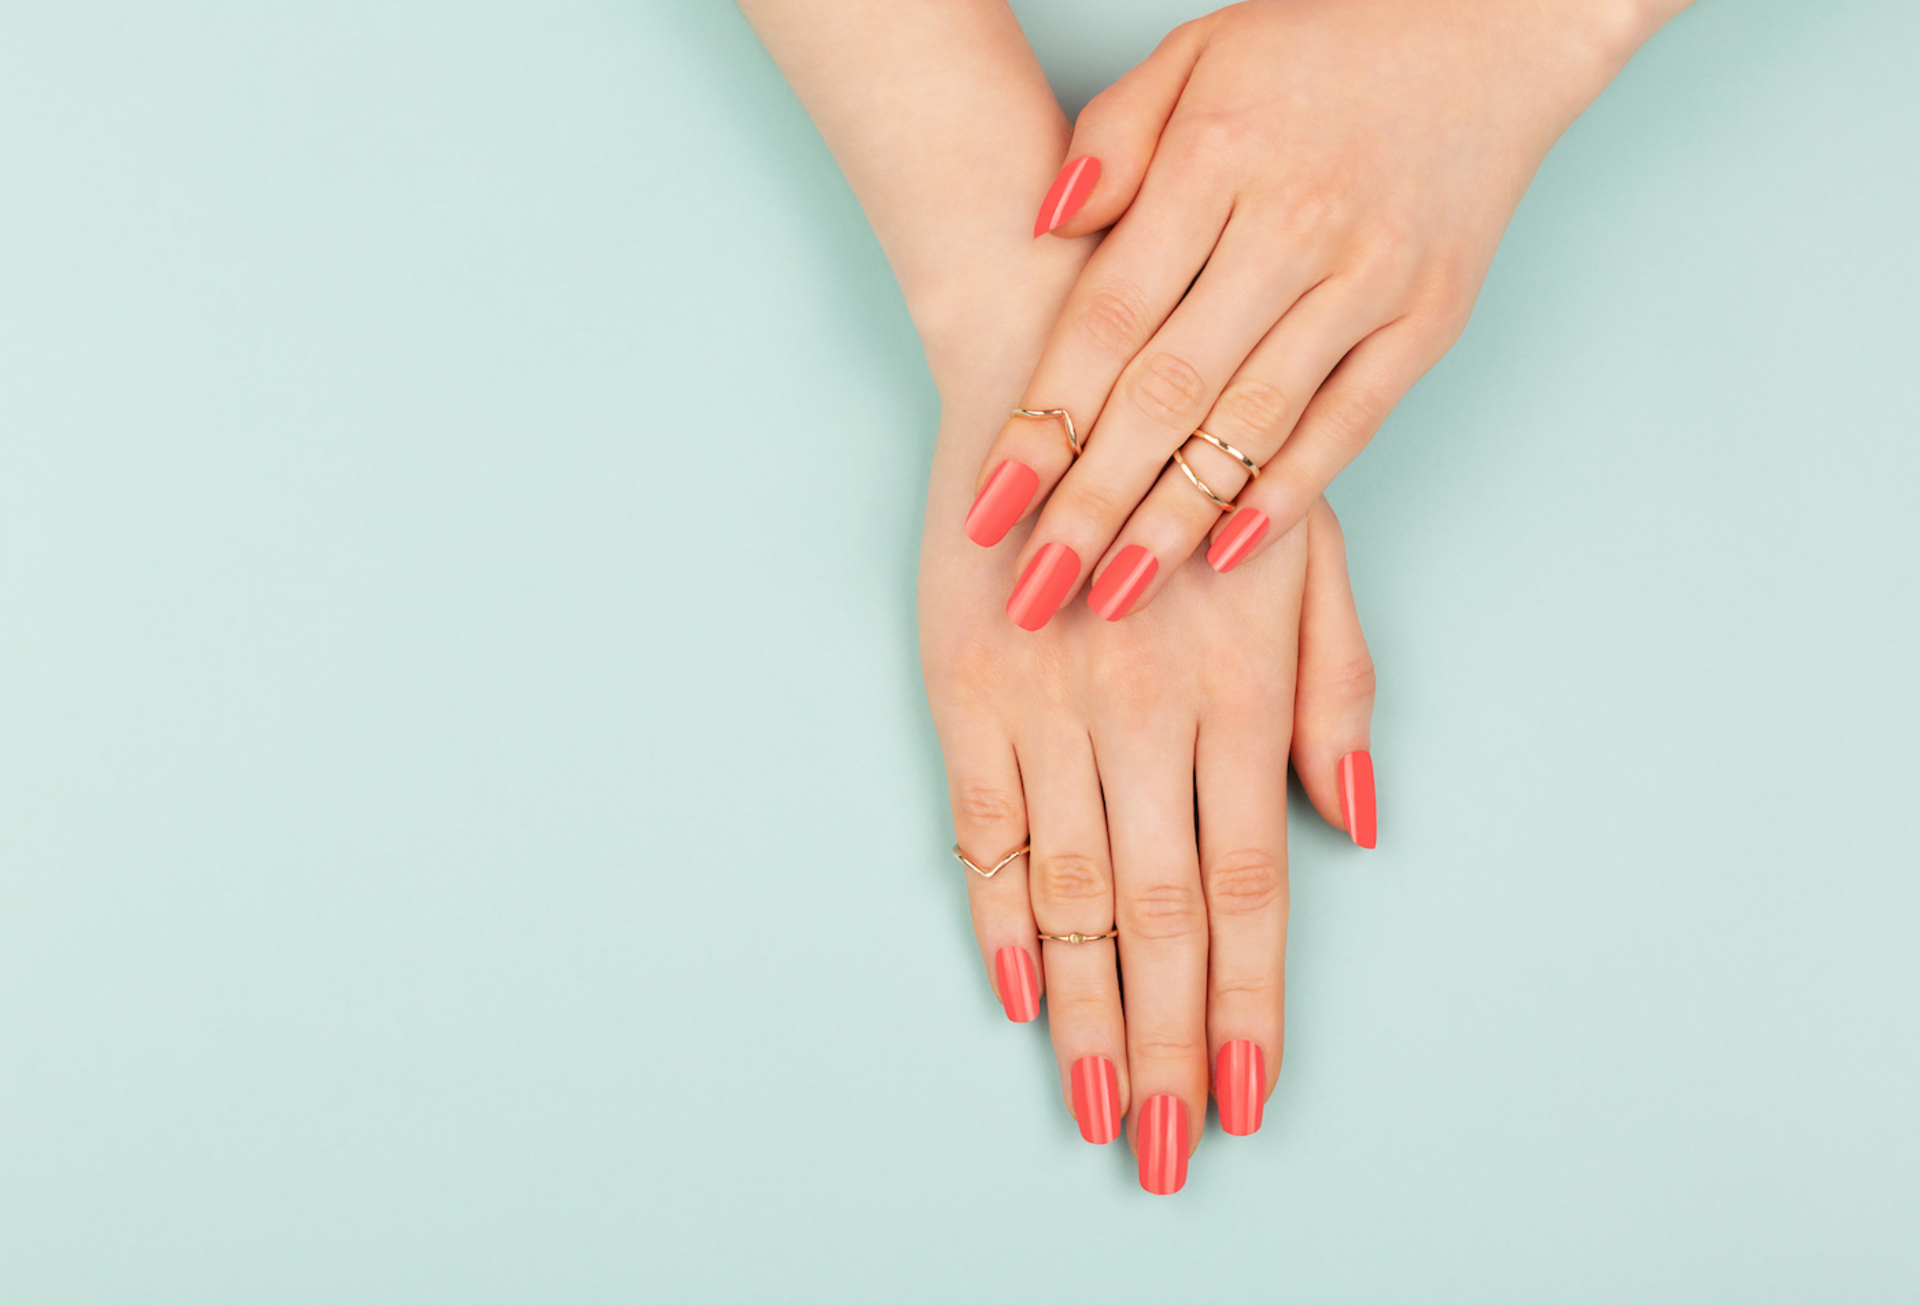 5 Ways to Grow Nails at Home image